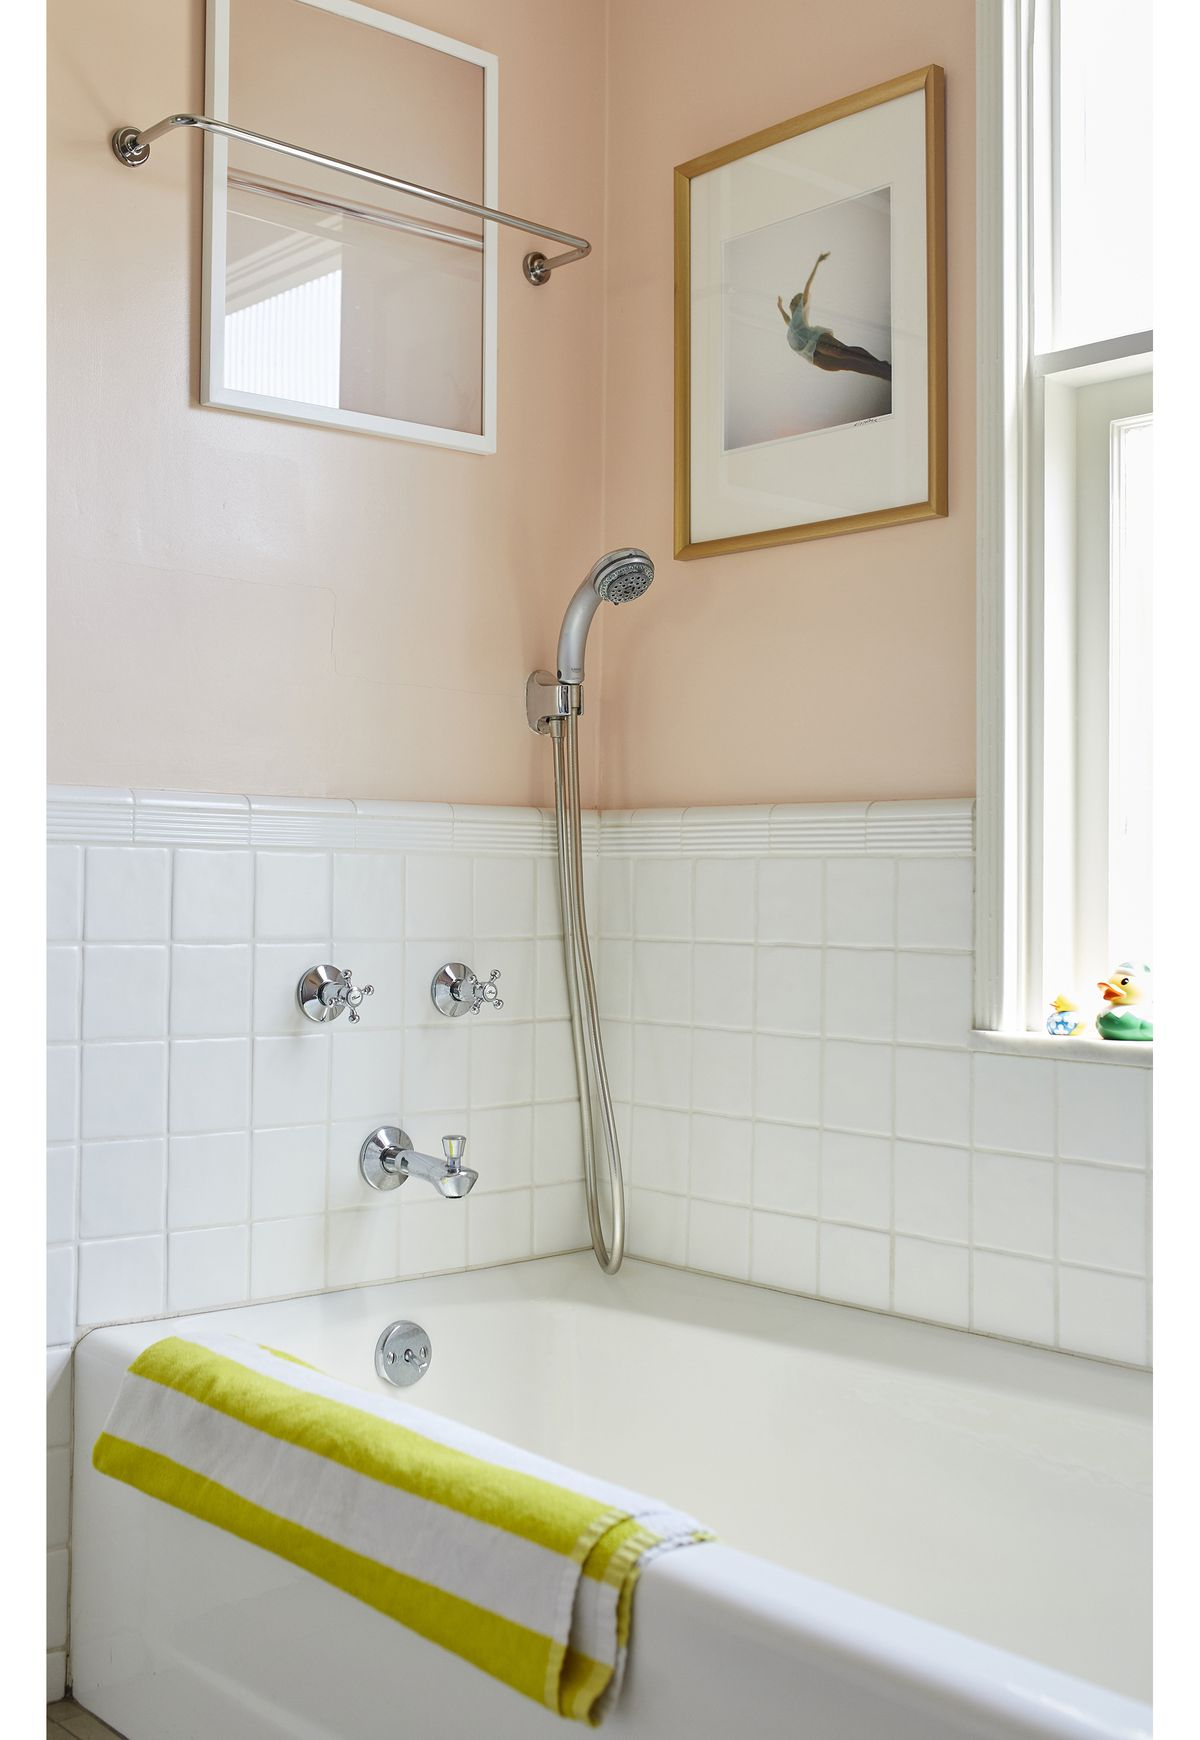 A bathroom with white tiles, a white bathtub and peach walls. There are two framed photographs hanging above the tub.